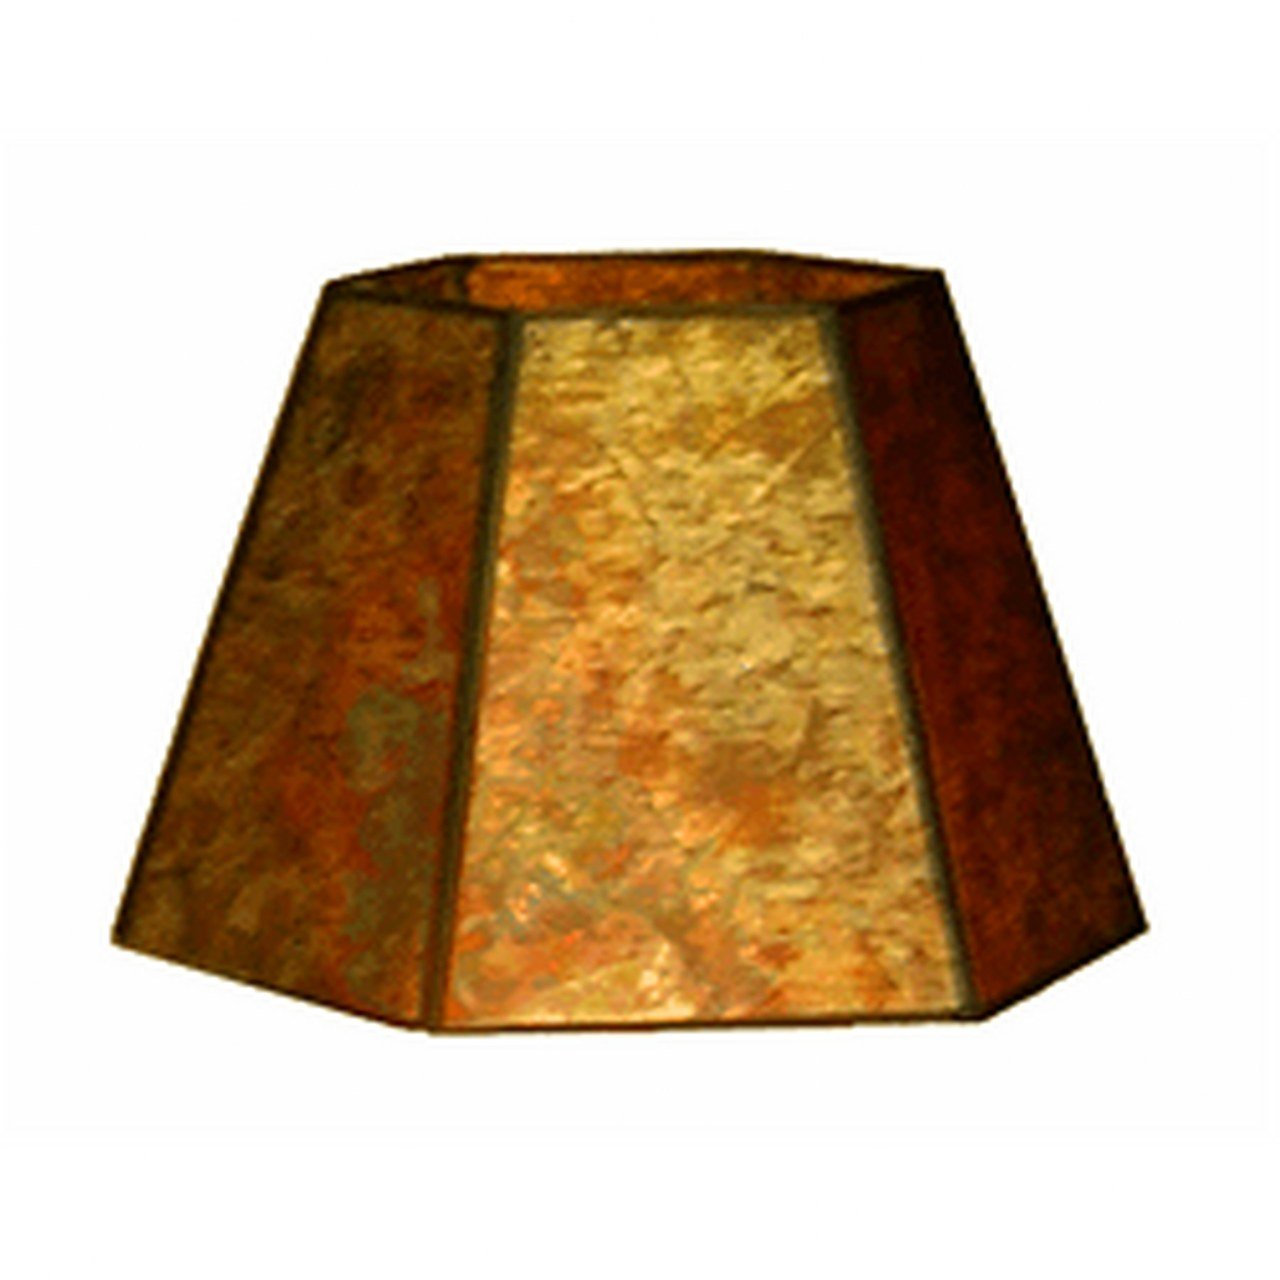 Upgradelights 12 Inch Uno Down Bridge Mica Lamp Shade Replacement For Floor  Lamps 7x12x7.5   Lampshades   Amazon.com